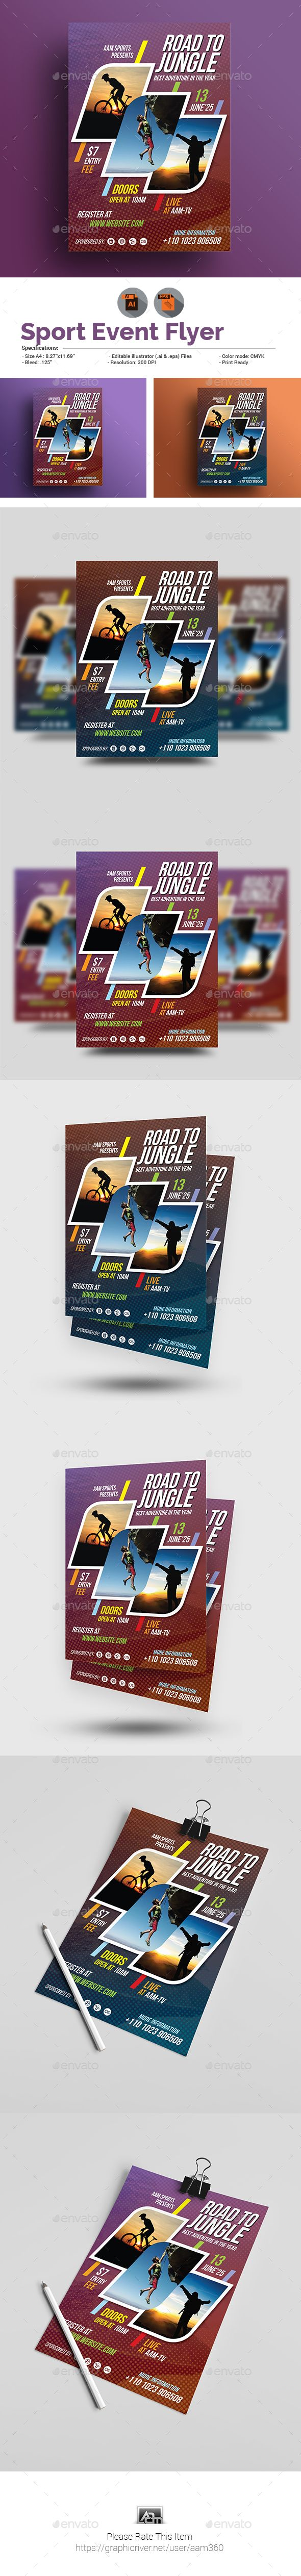 "Sport Event Flyer by aam360 Similar Templates:INFORMATIONS FOR THIS FLYER TEMPLATE:FEATURES:Size: 8.27""x11.69""Bleed: .25""Fully editable Illustrator AI"